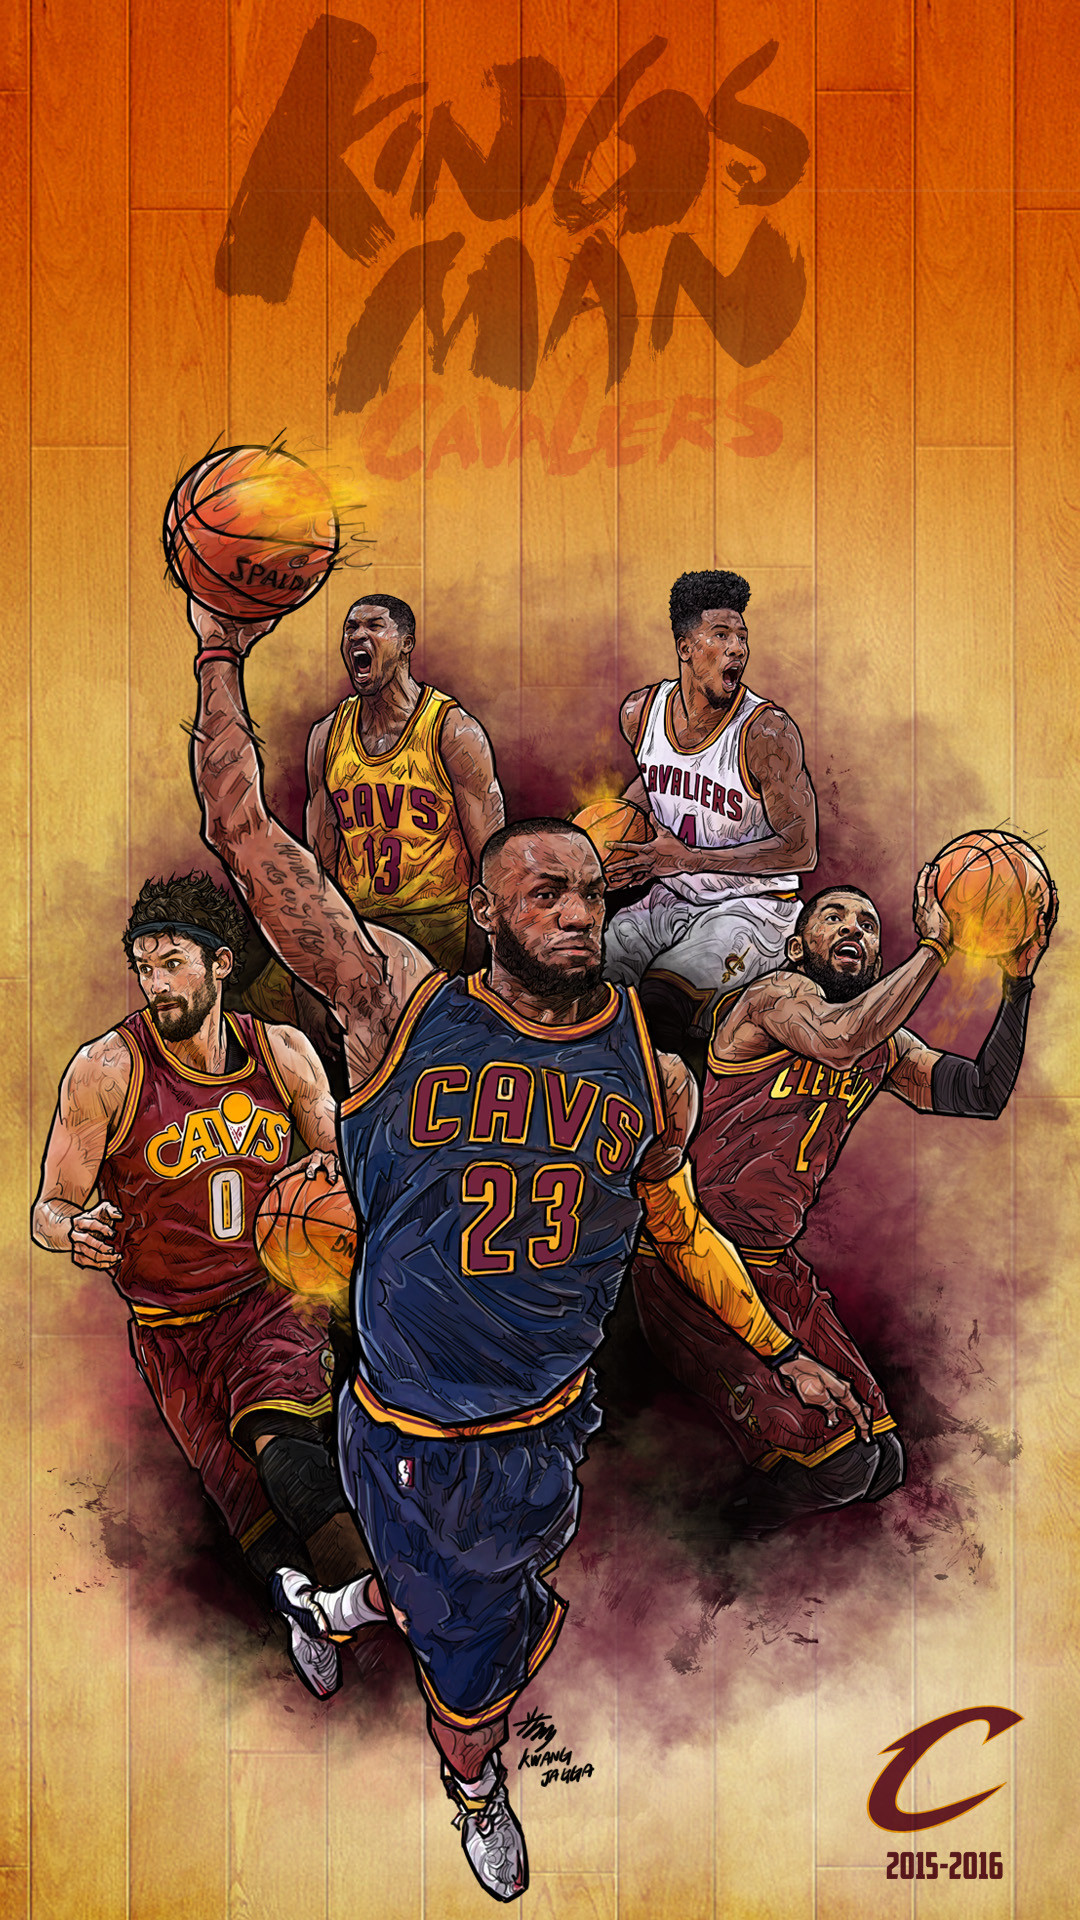 Nike Basketball Wallpaper 2018  50  images  1080x1920 NBA Phone Wallpaper   Artist  Kim MinSuk